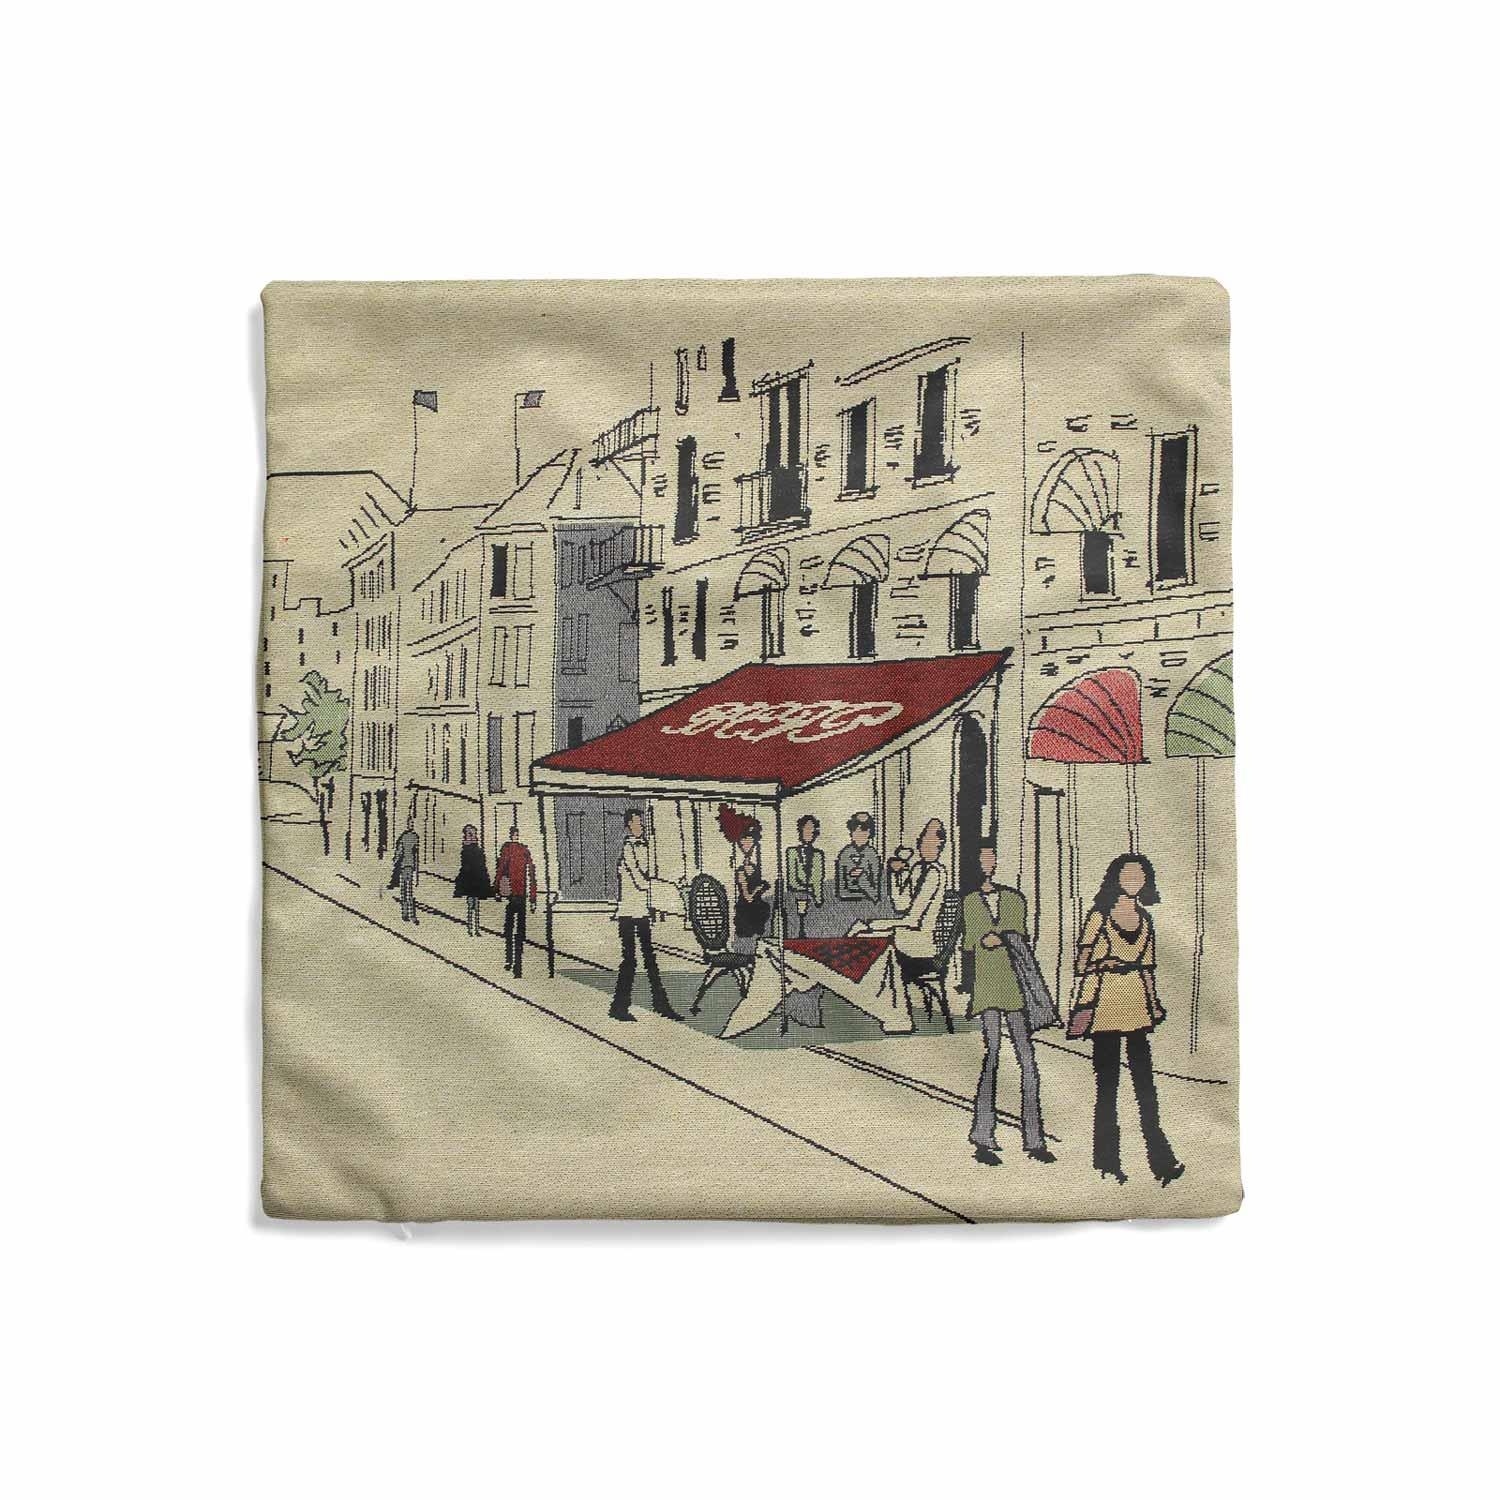 Tapestry-Cushion-Covers-Vintage-Pillow-Cover-Collection-18-034-45cm-Filled-Cushions thumbnail 200